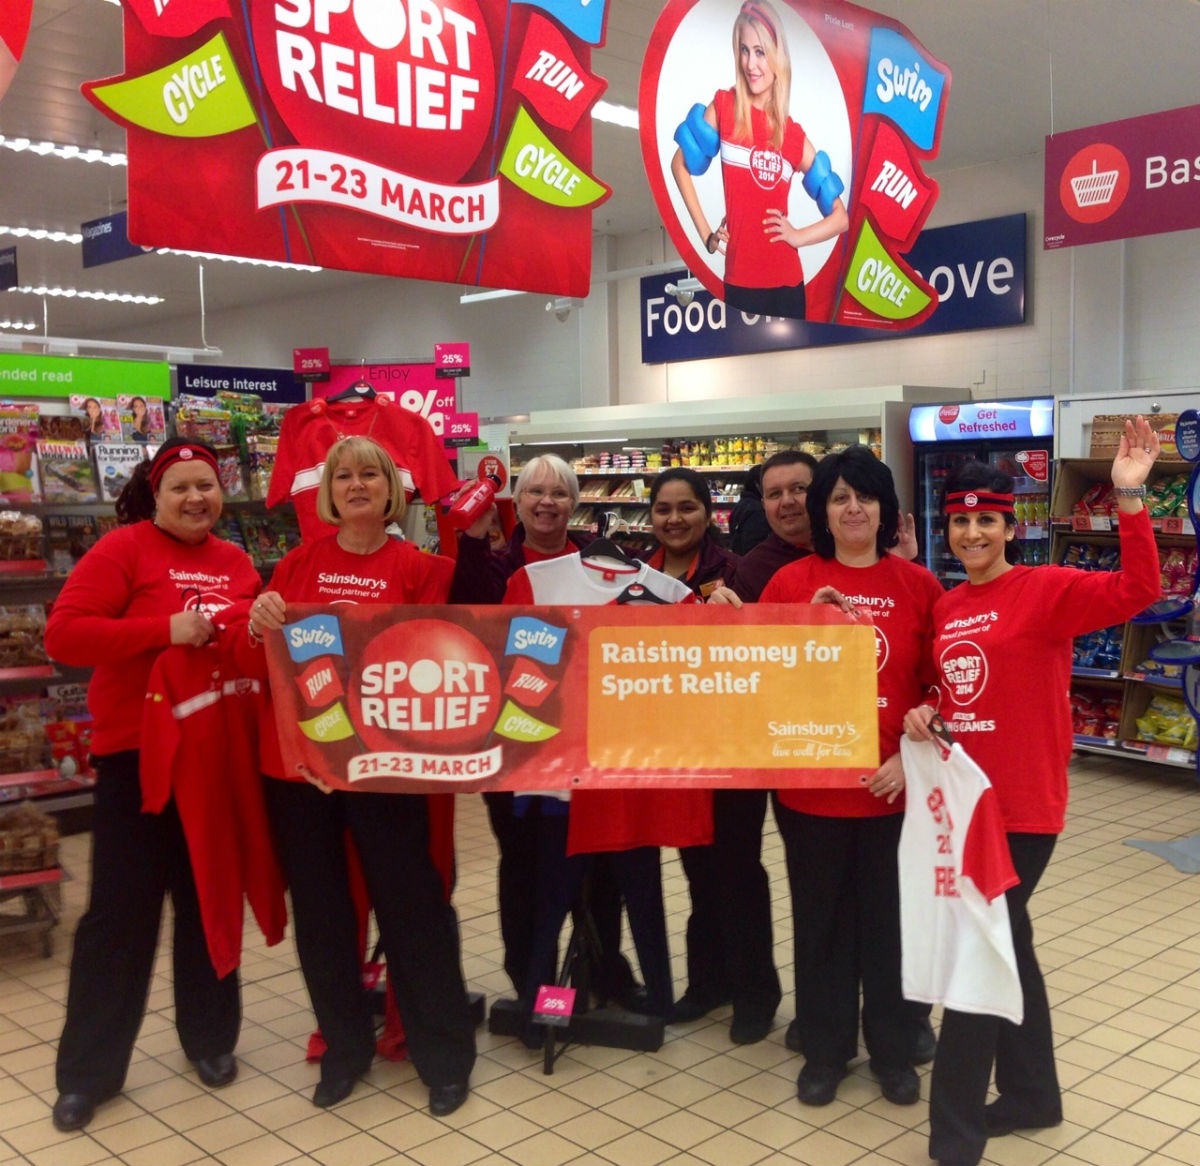 Sainsbury's staff get ready for Sport Relief 2014.